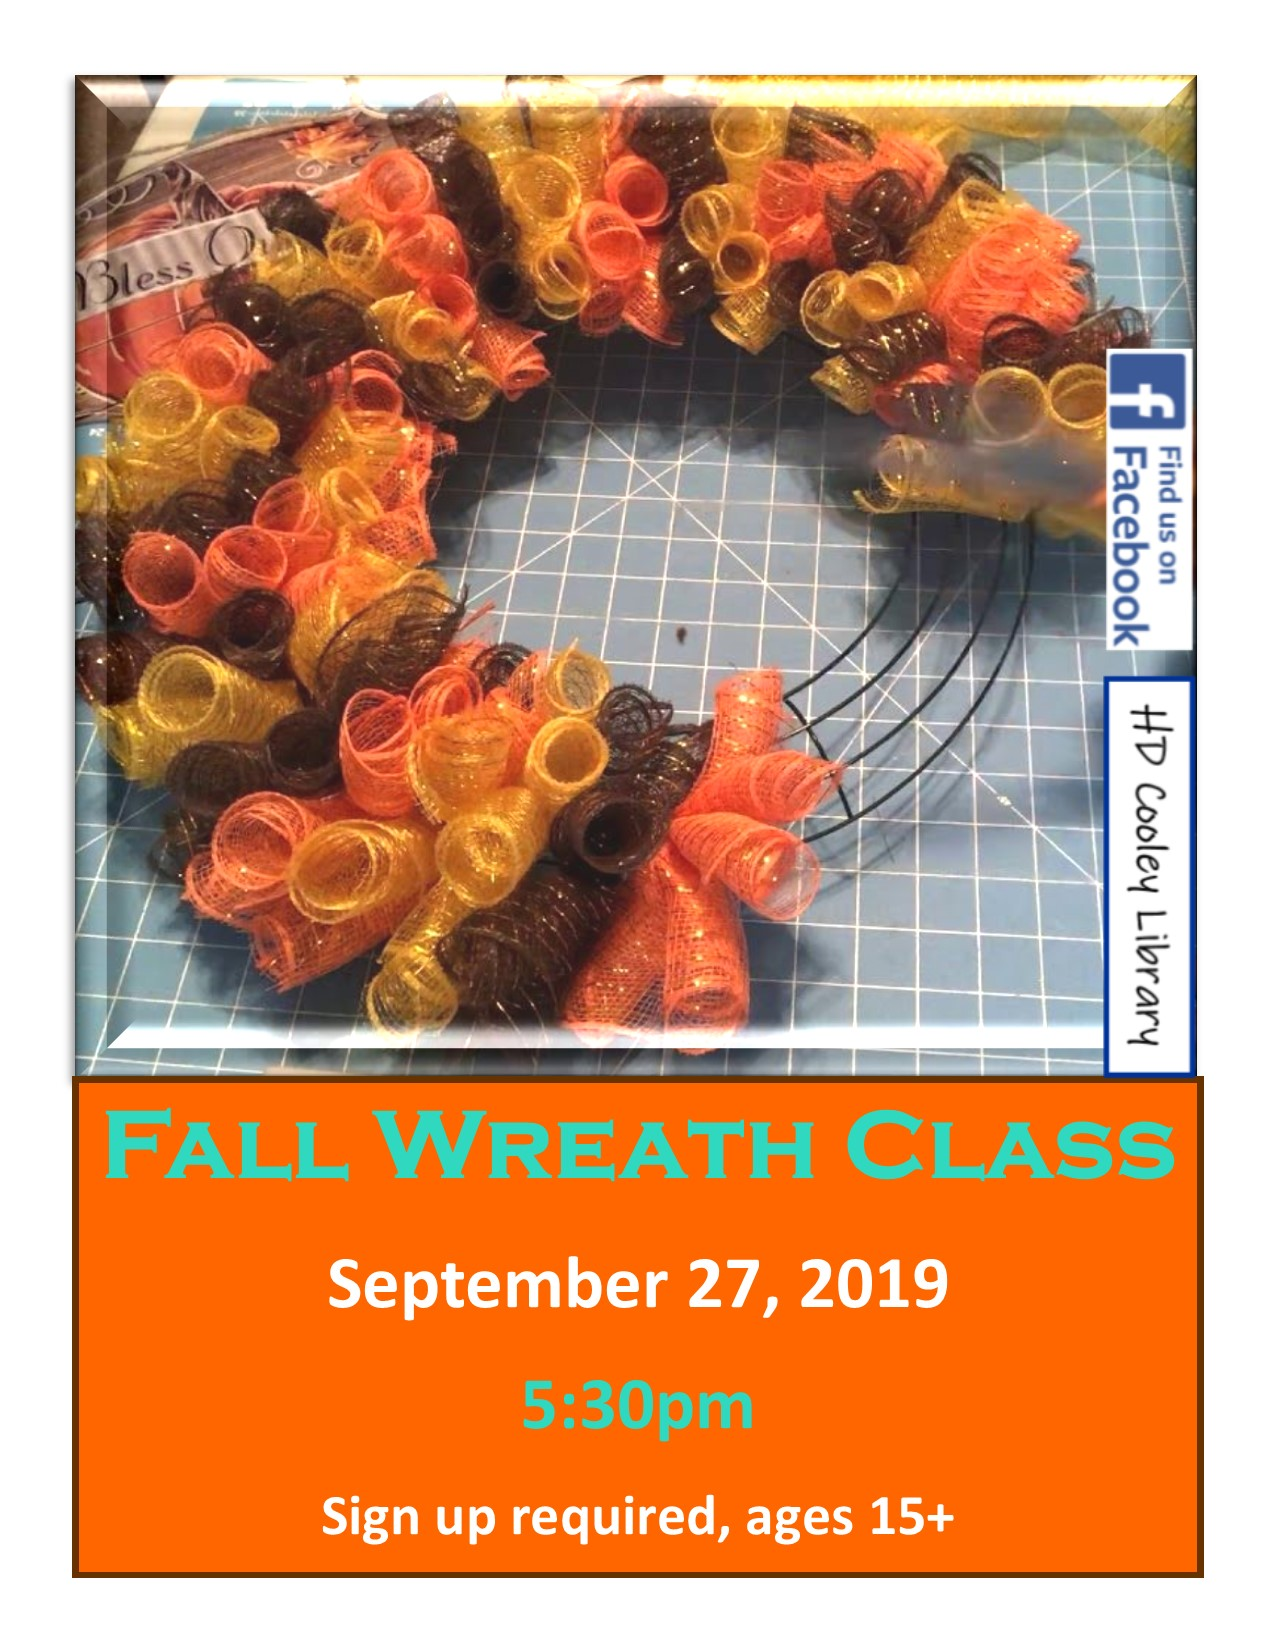 Fall Wreath class time and date